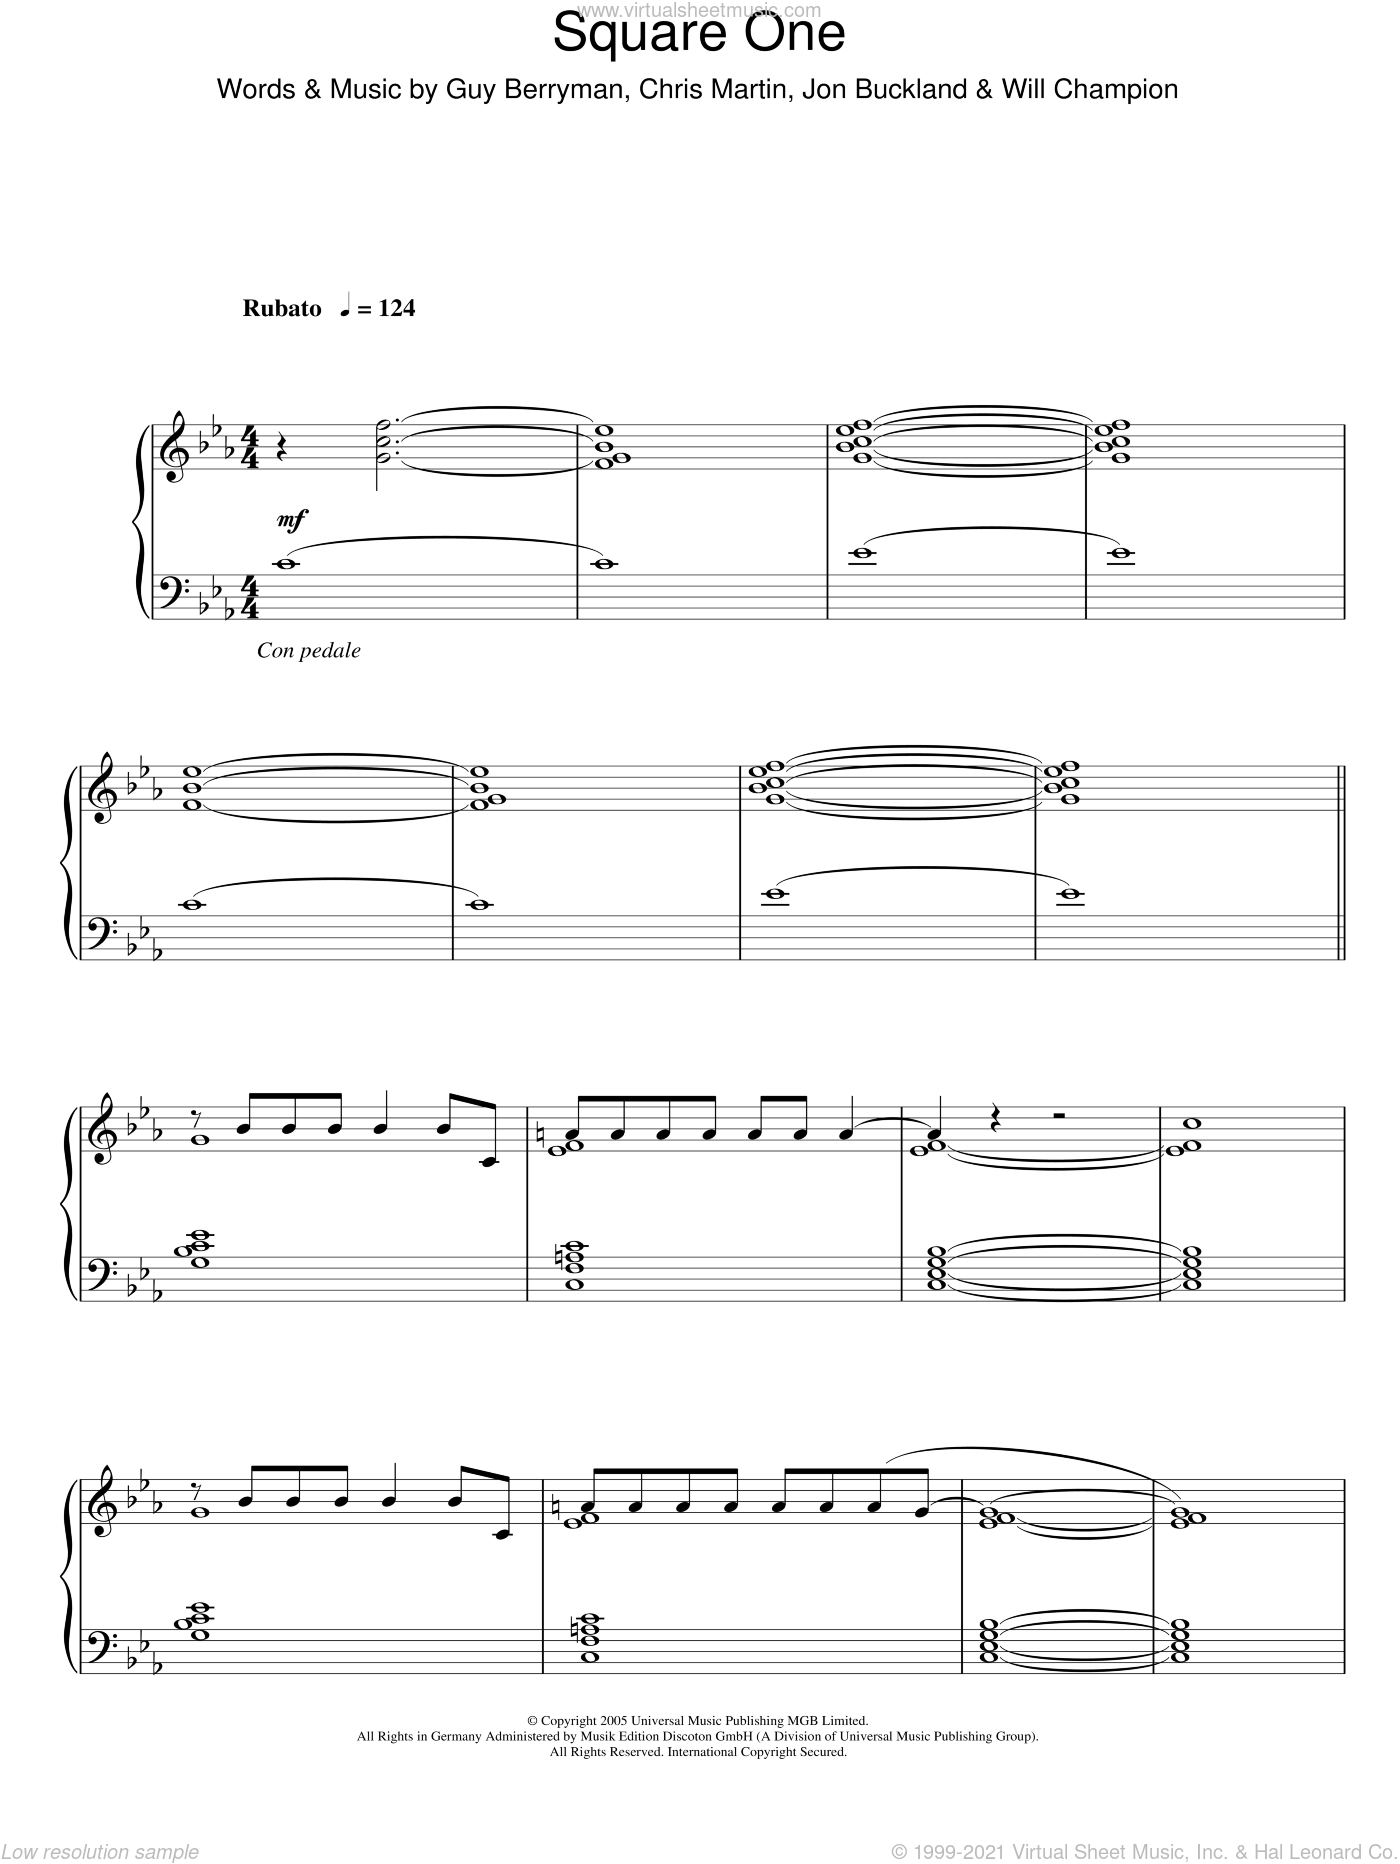 Square One sheet music for piano solo by Will Champion